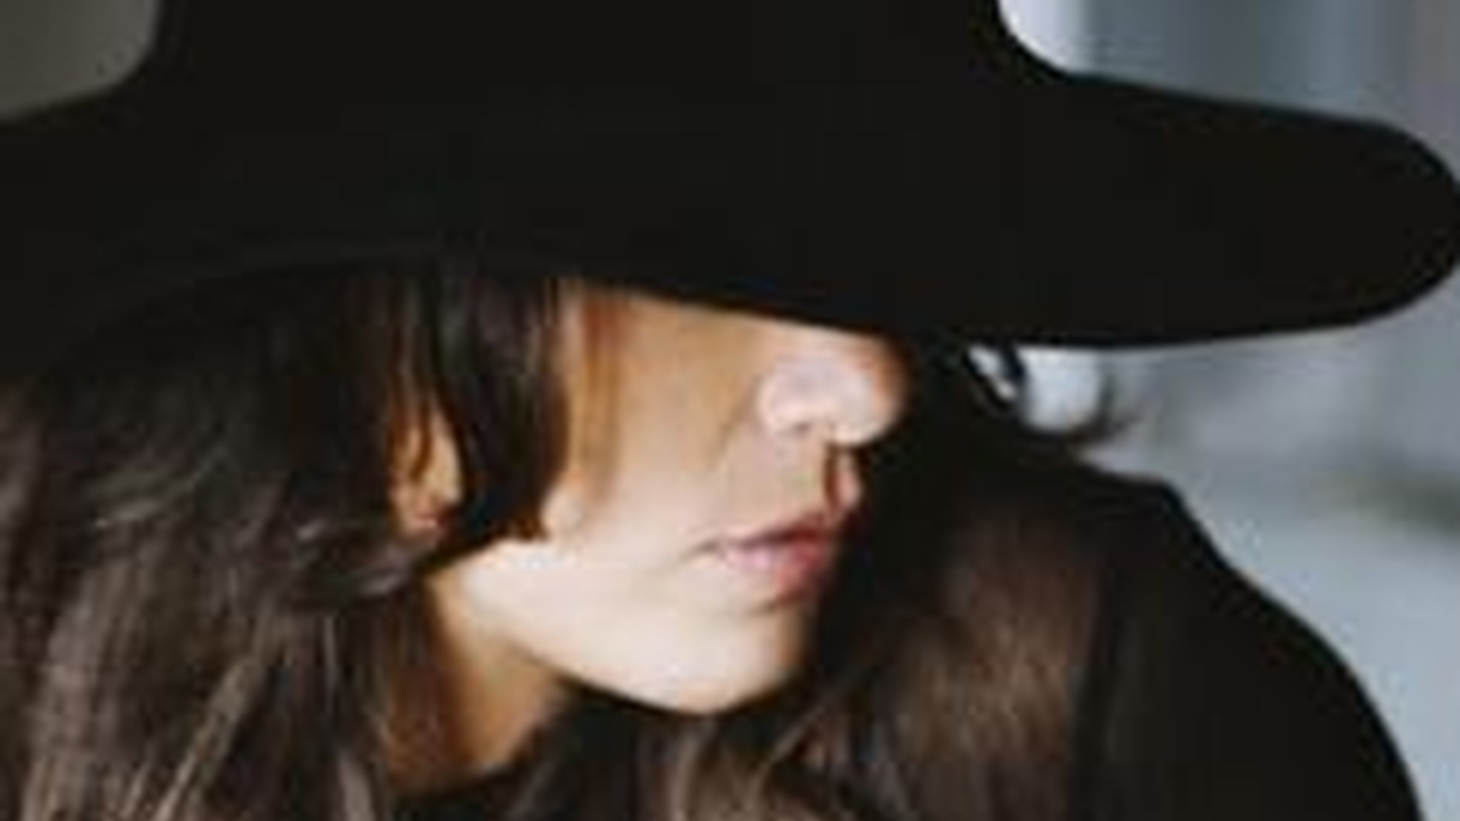 Songwriter Rachael Yamagata treats us to music from her major label release on Morning Becomes Eclectic at 11:15am.